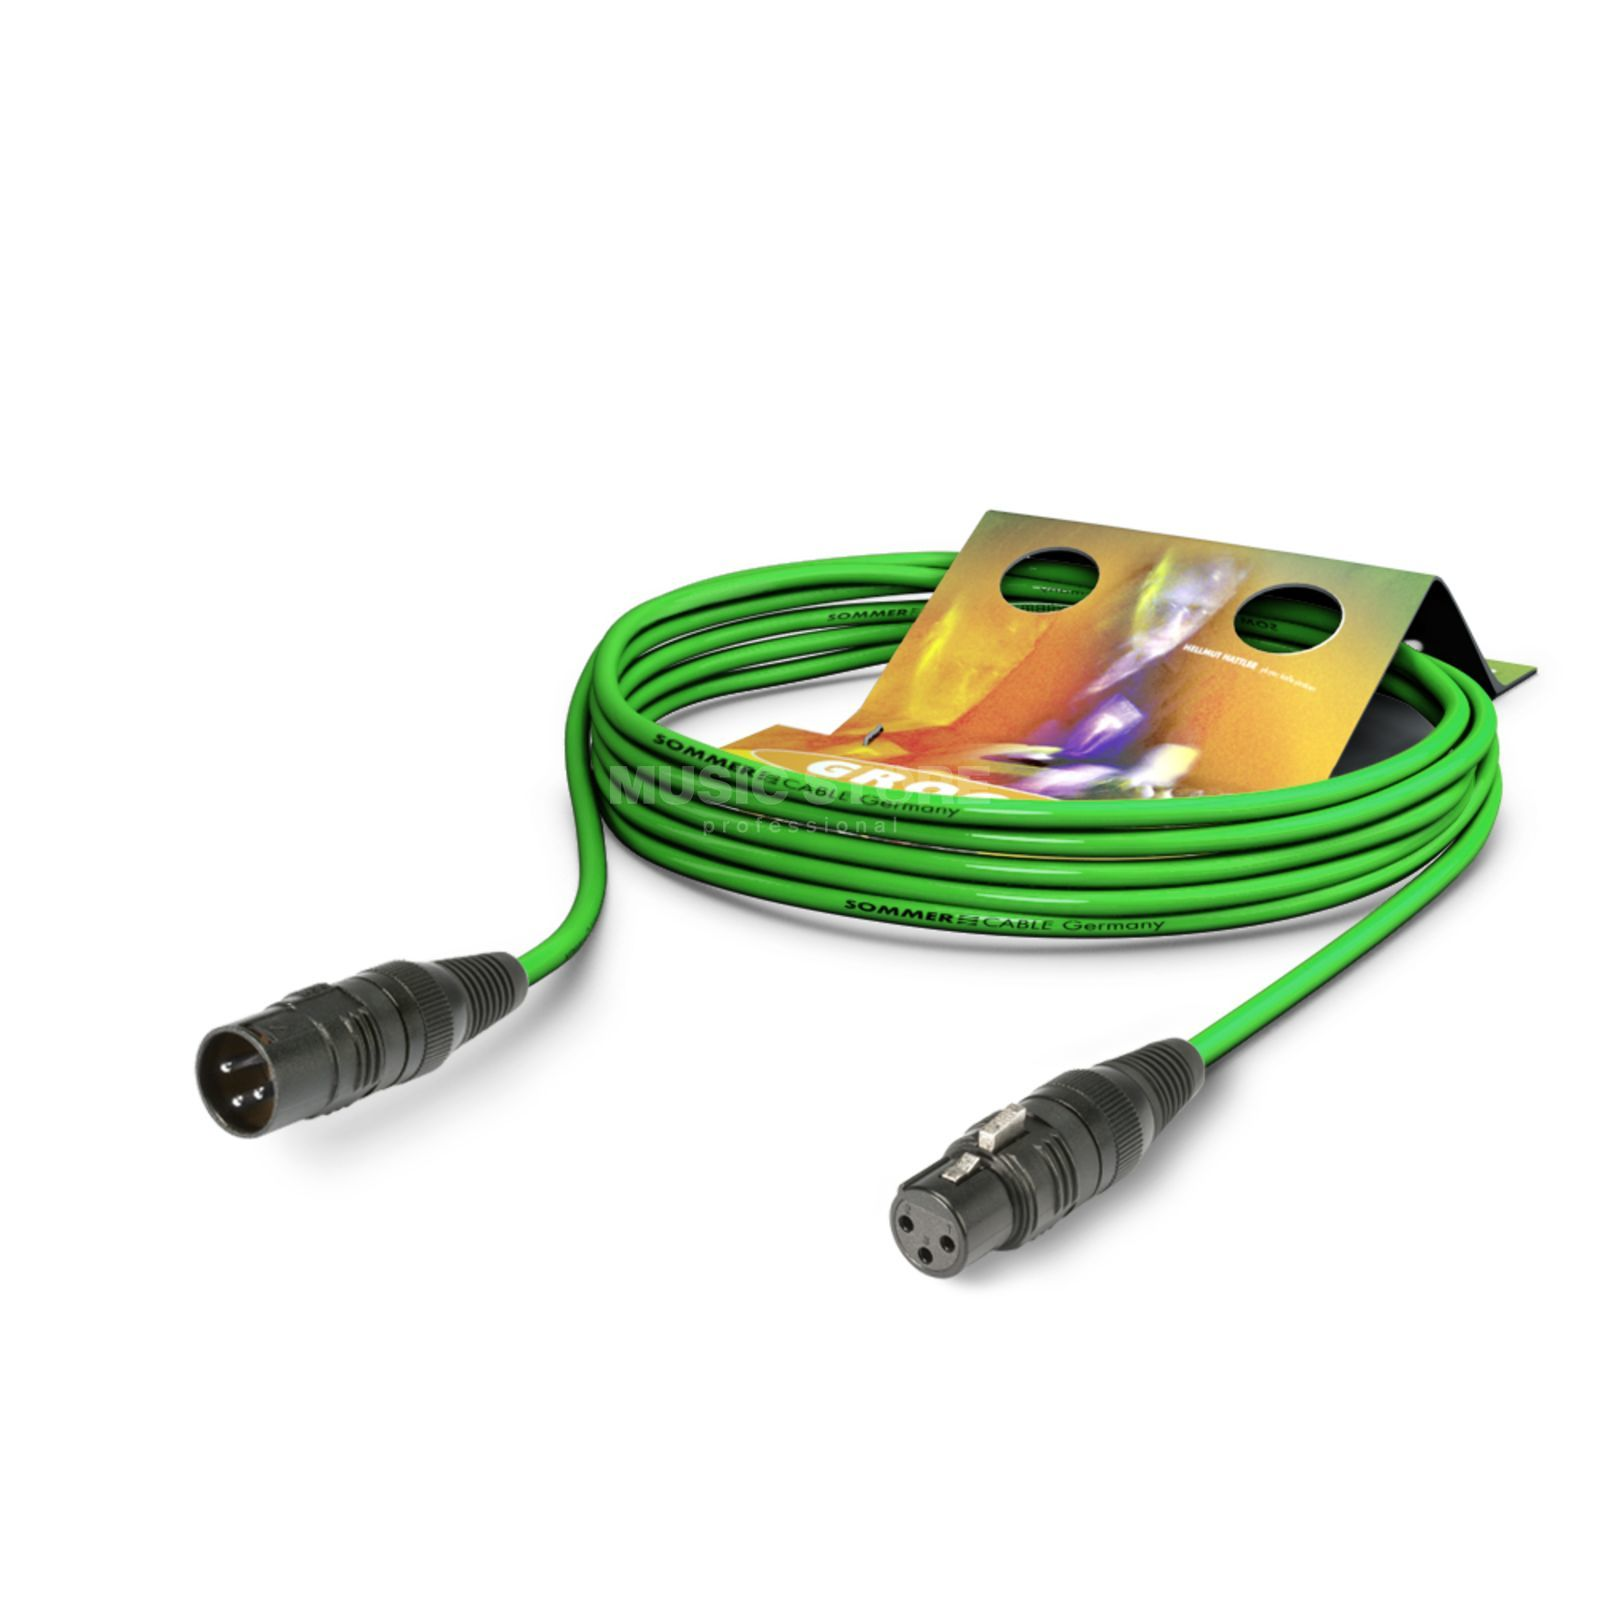 Sommer Cable SGCE-0600 GN Microphone Cable 6m green, HICON Produktbillede